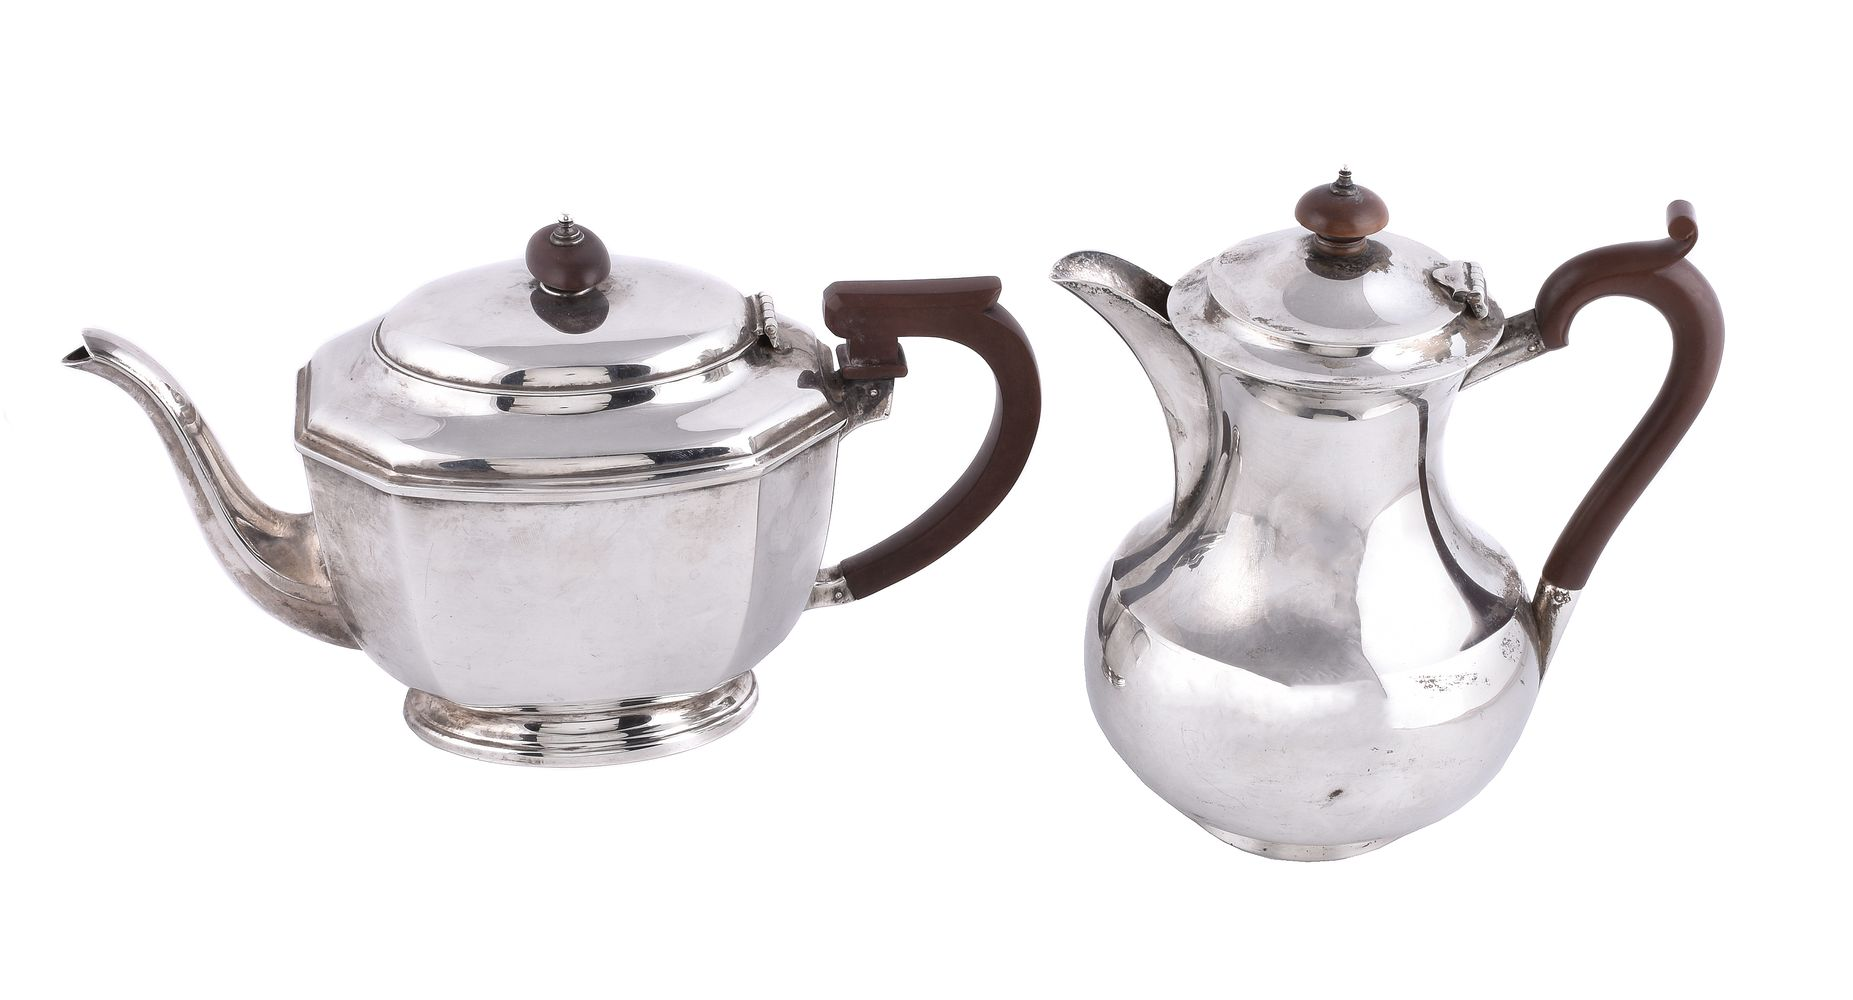 A silver canted rectangular tea pot by William Neale & Son Ltd